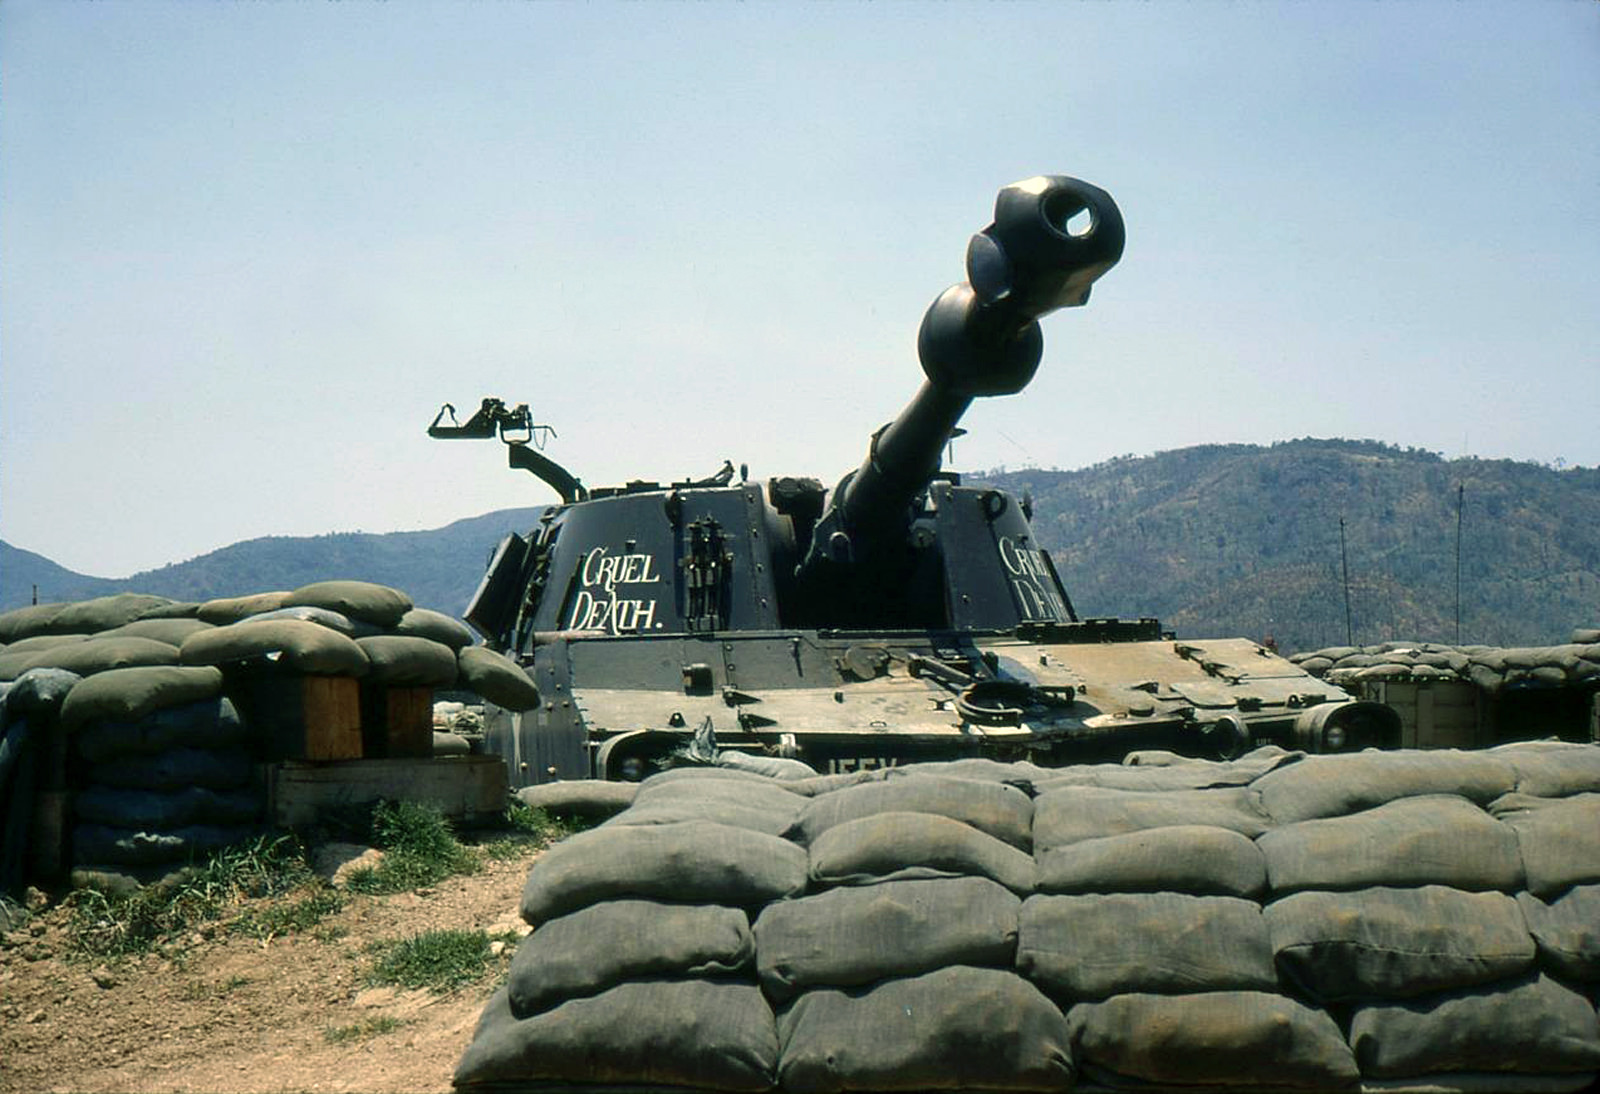 ''CRUEL DEATH'' M109 155MM SELF-PROPELLED HOWITZER, 1971.